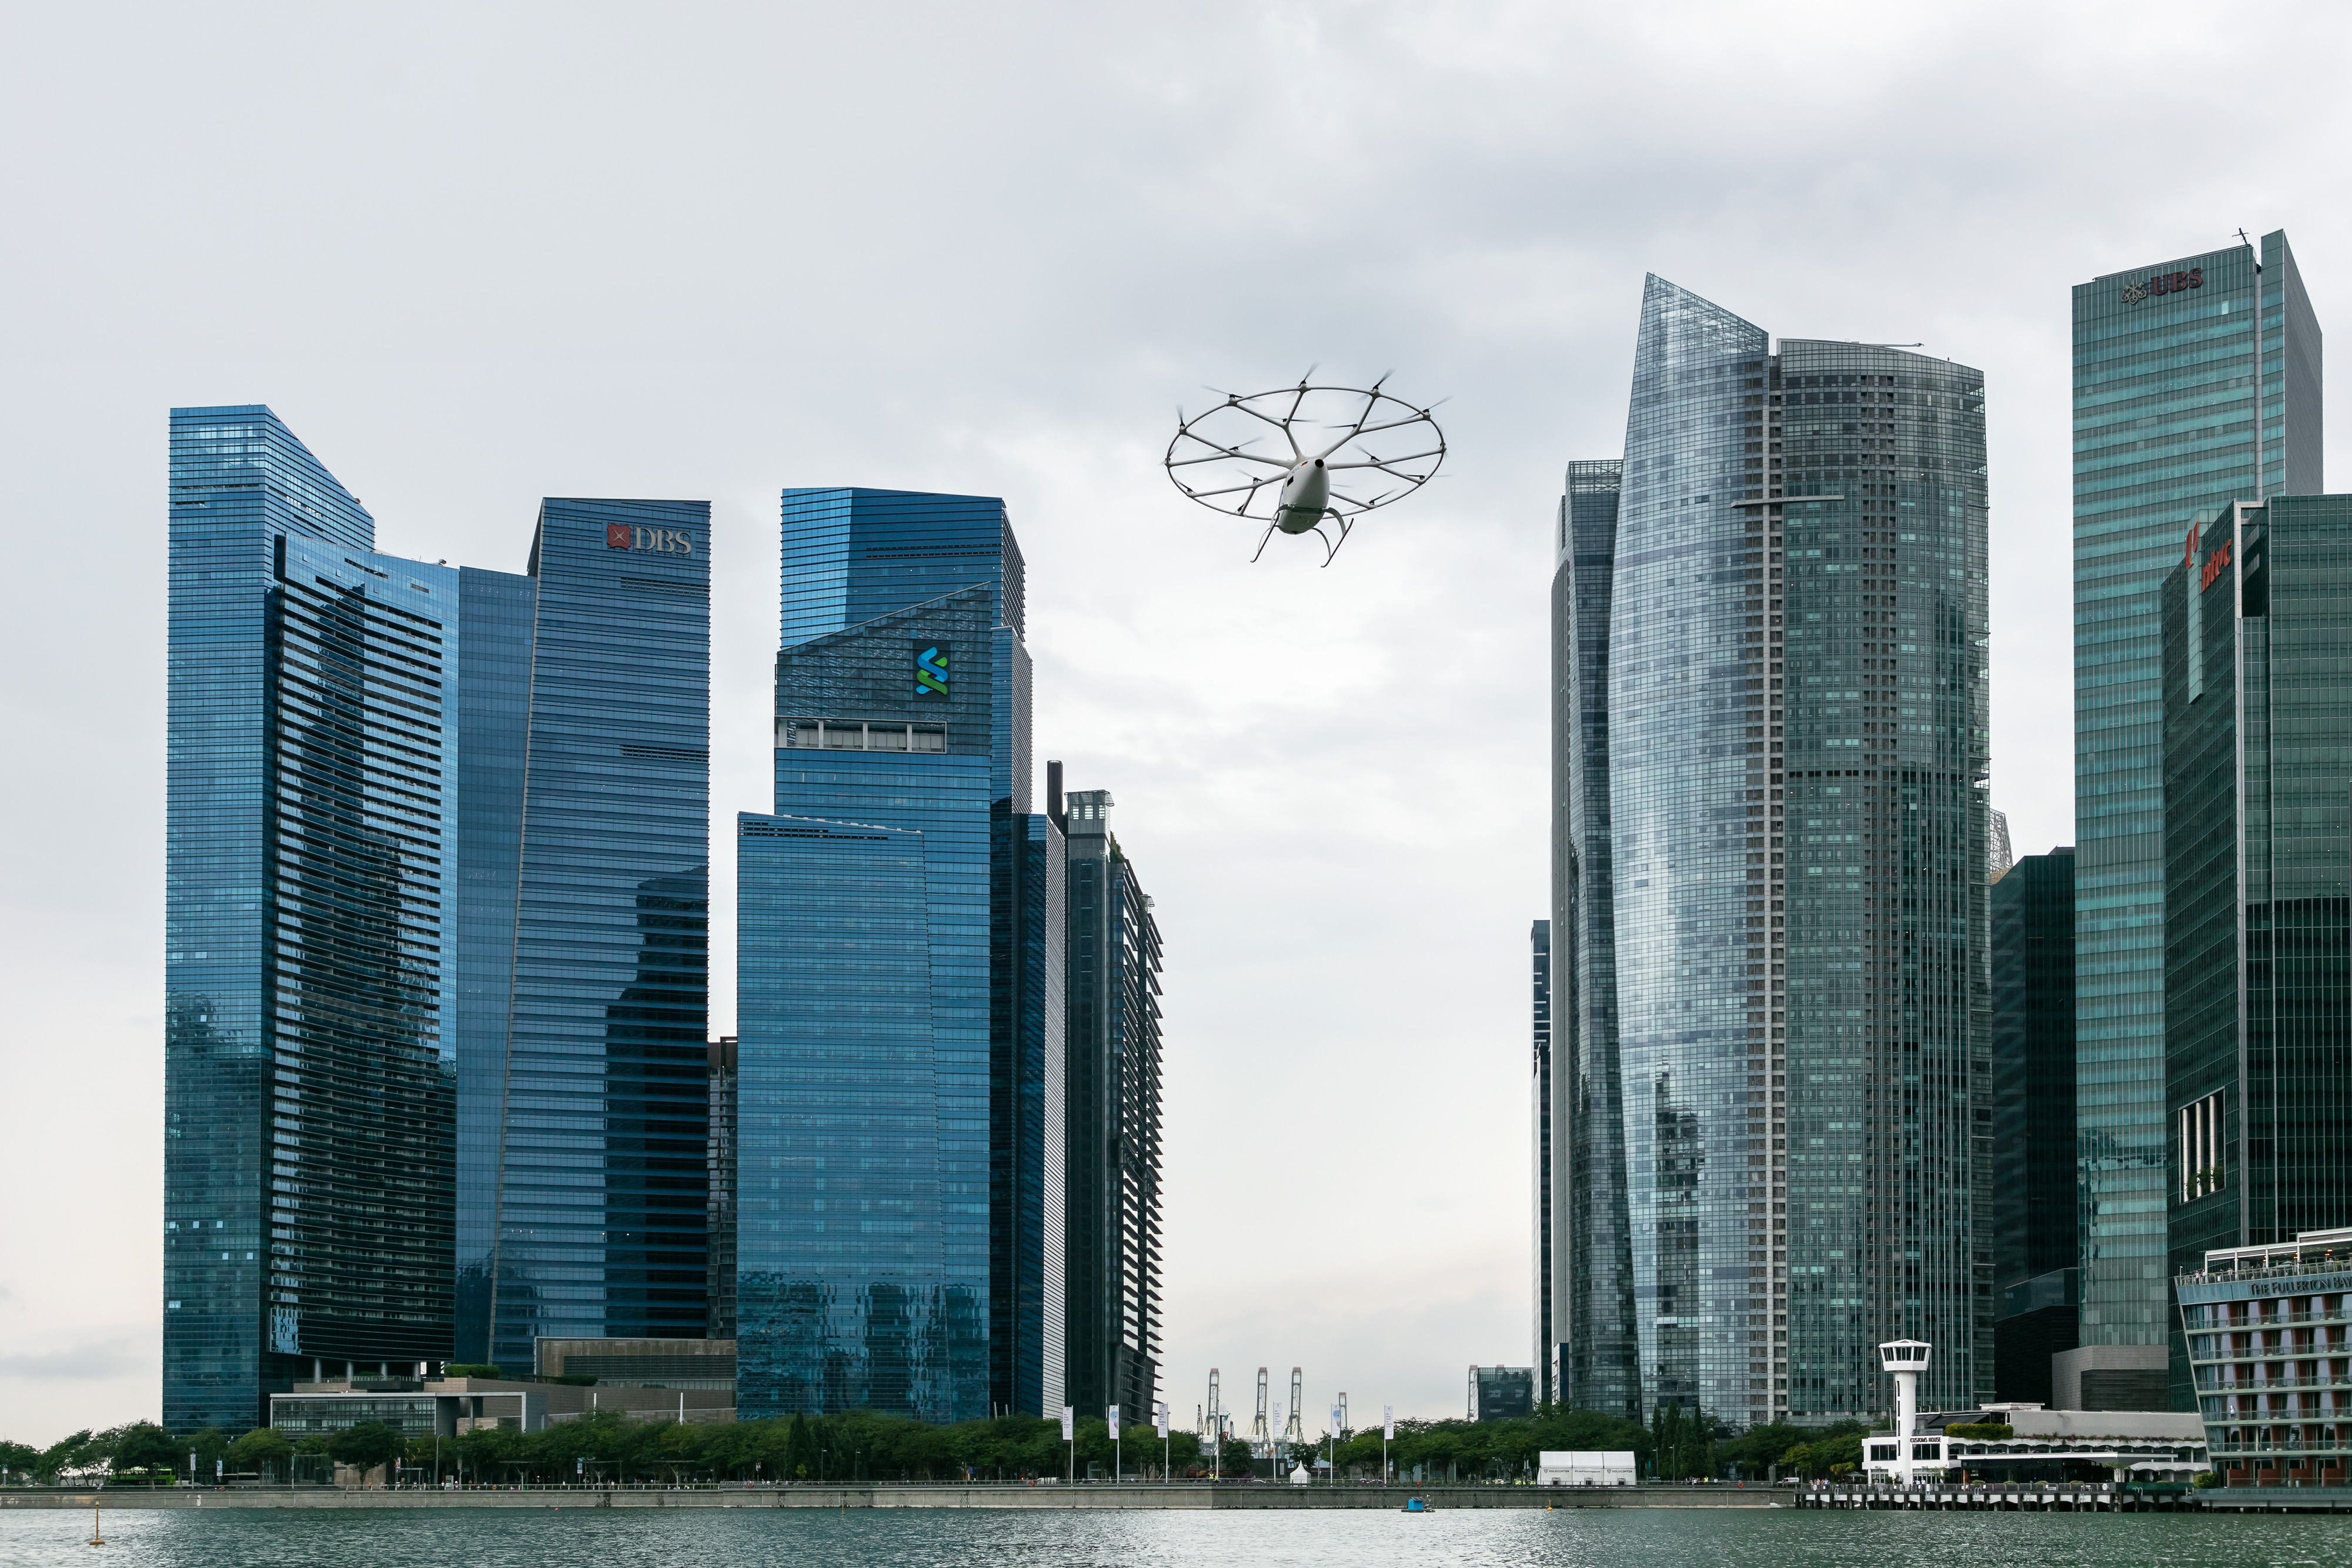 The Ministry of Transport, the Civil Aviation Authority of Singapore and the Economic Development Board have supported Volocopter. Photo courtesy: Nikolay Kazakov for Volocopter